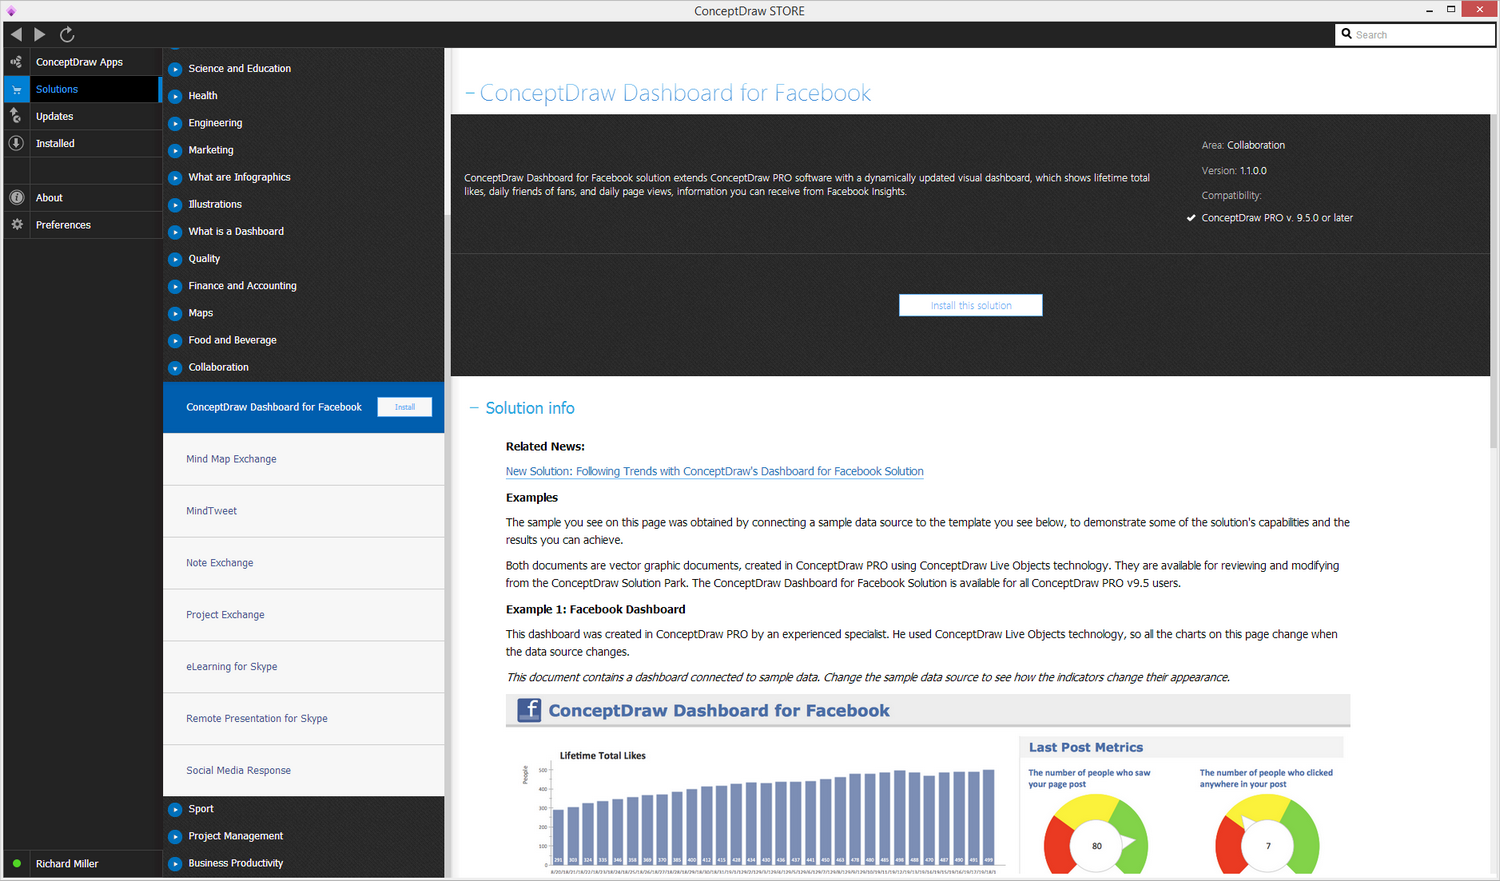 dashboard for facebook solution conceptdraw com diagram of impact